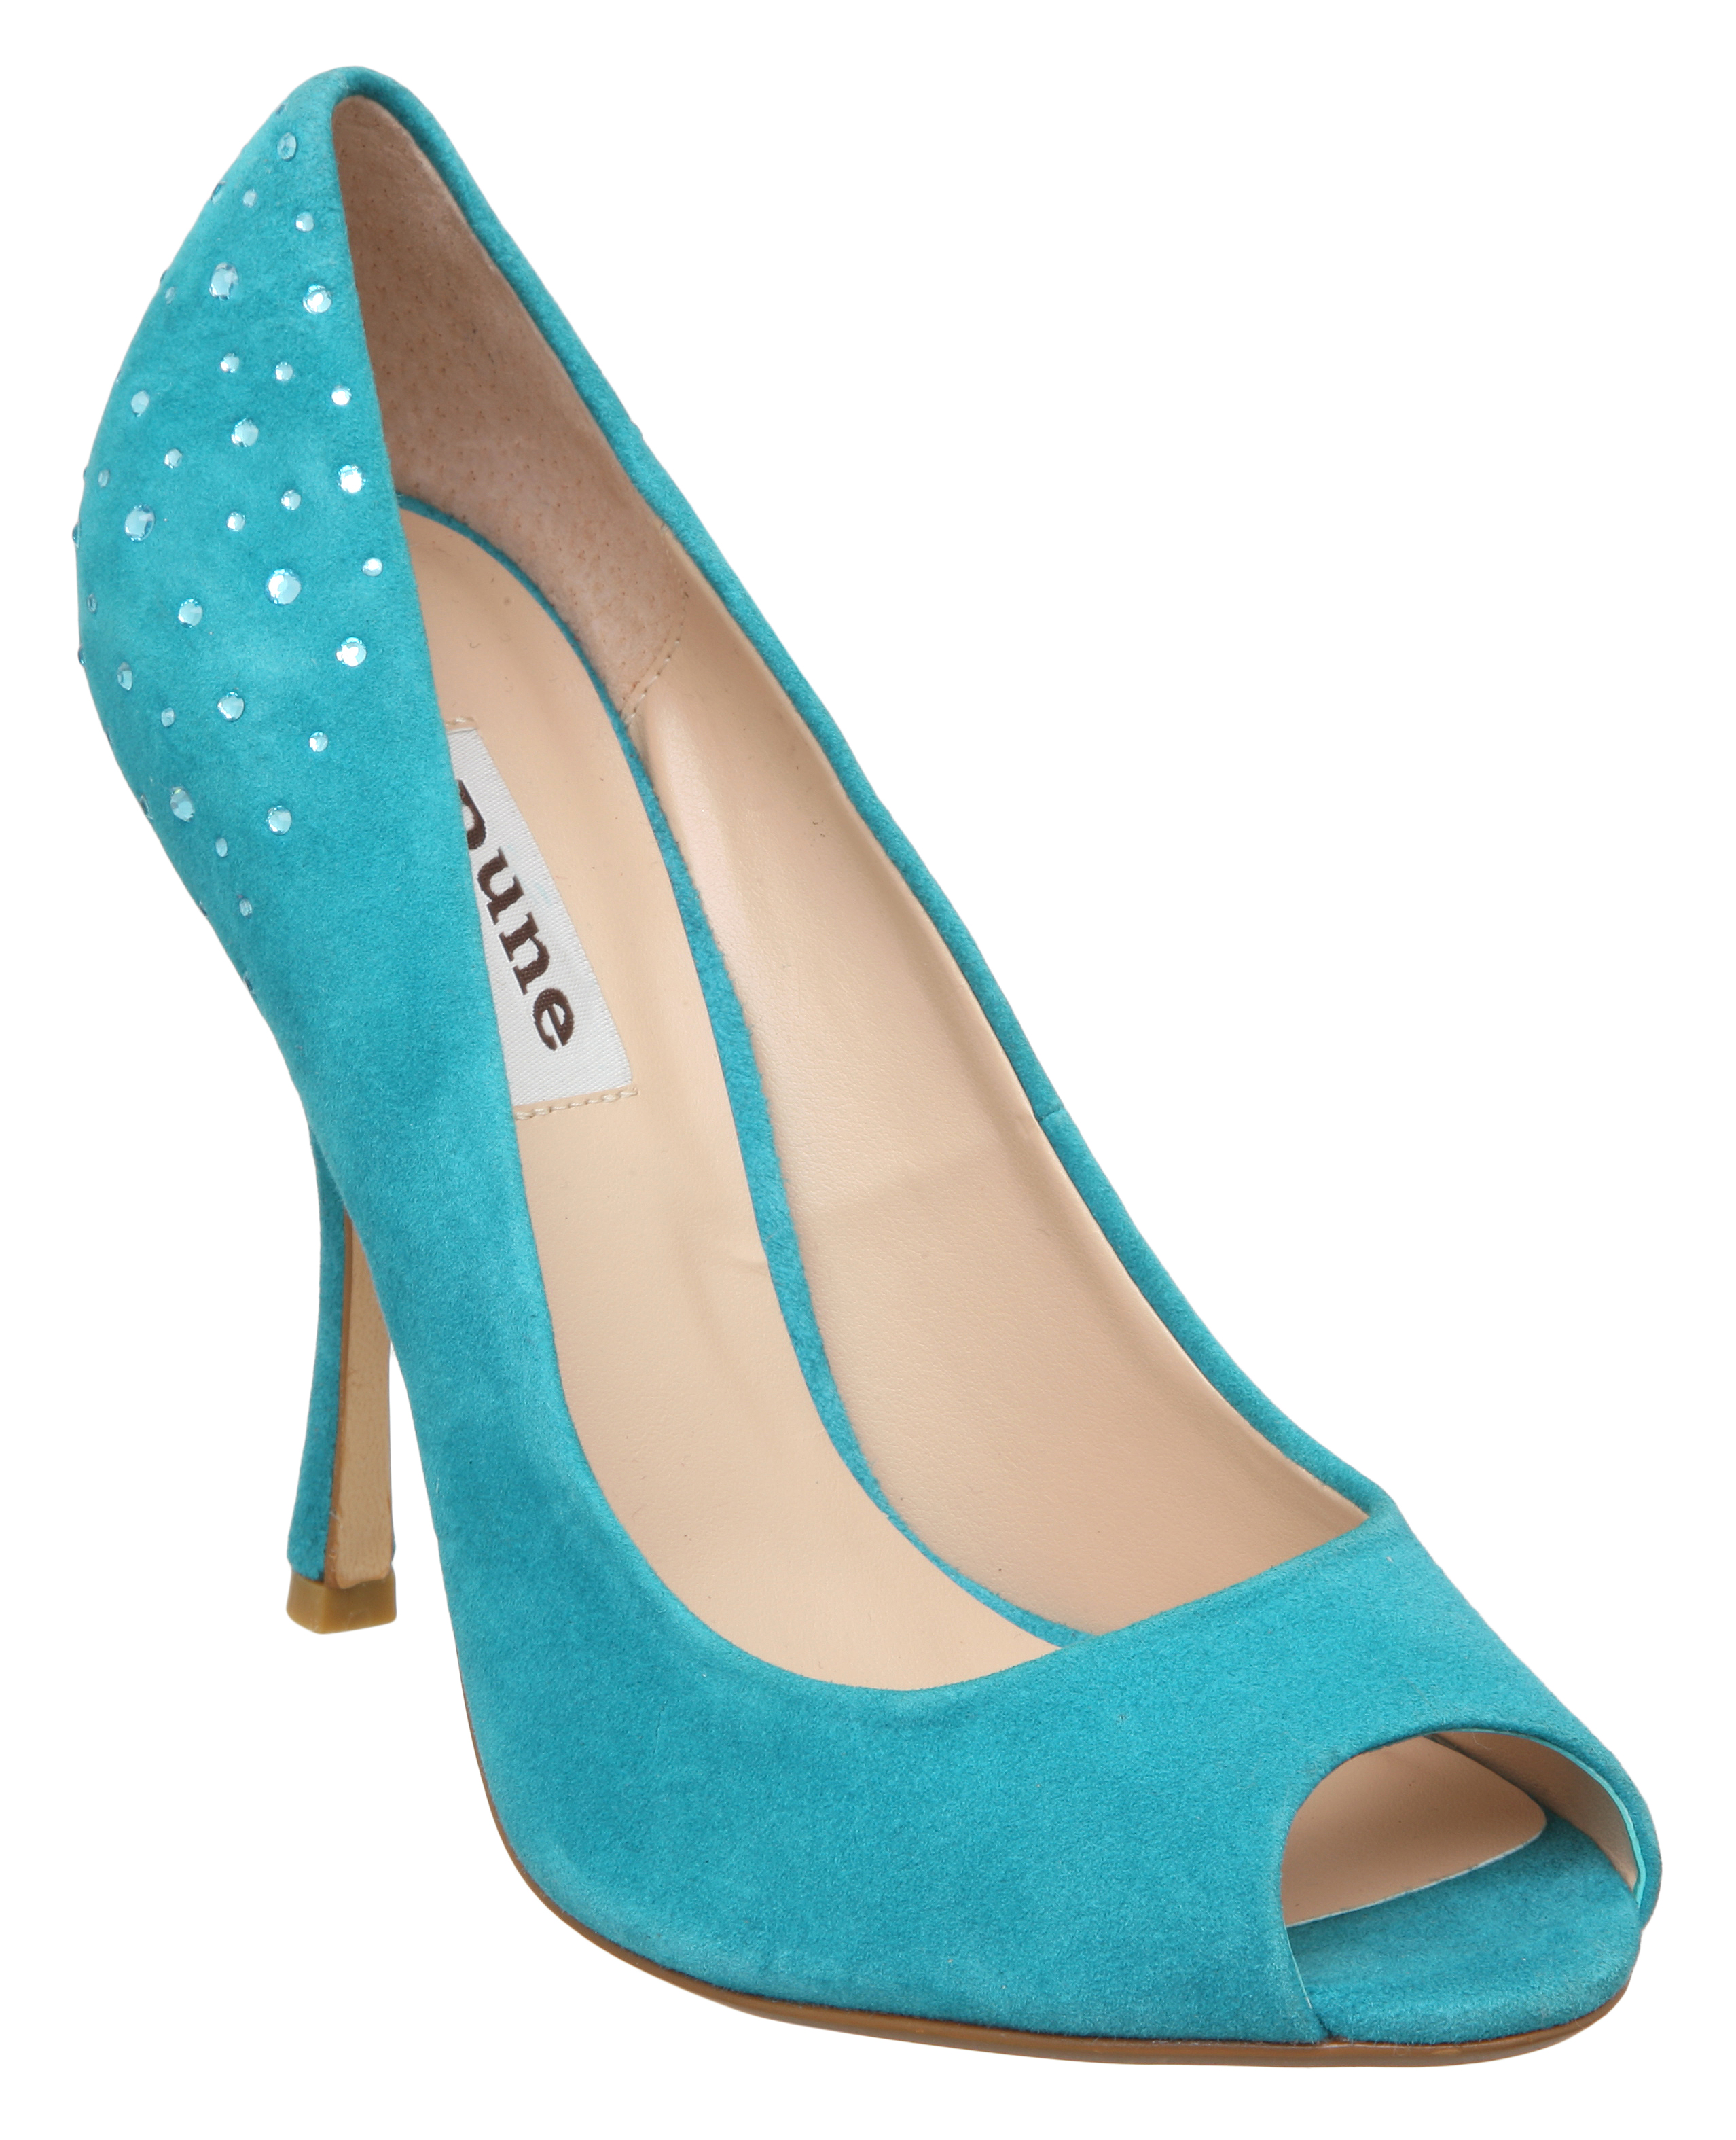 NEW-DUNE-LADIES-DRAMA-WOMENS-TURQUOISE-BLUE-DIAMANTE-PEEP-TOE-SHOES